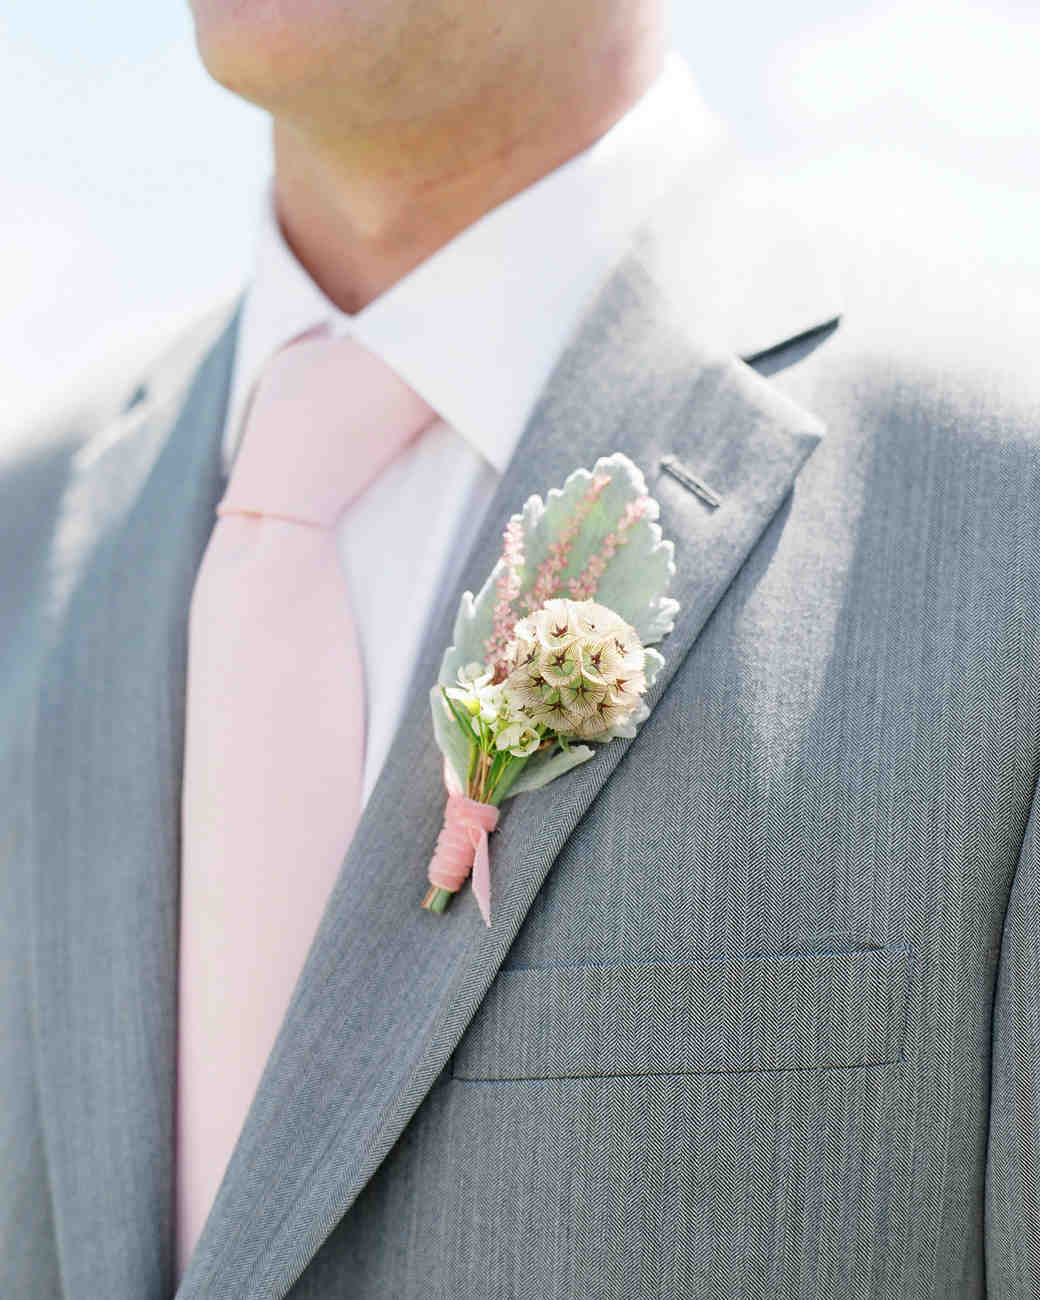 Pink Wedding Boutonniere and Tie